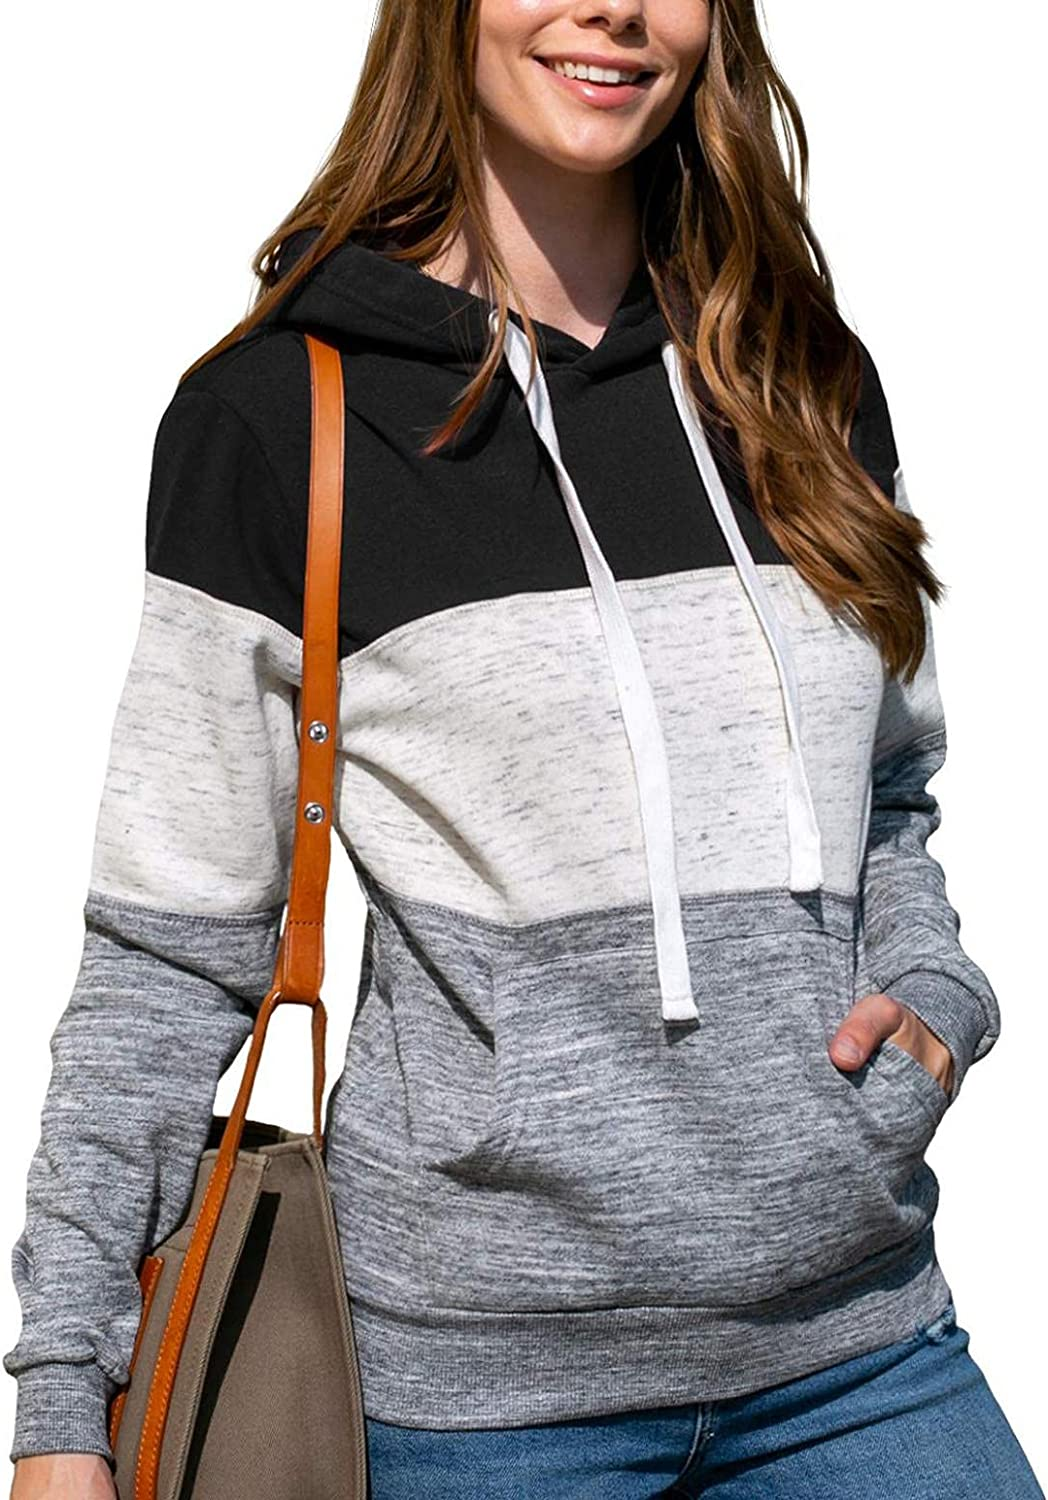 Qopobobo Sweatshirts for Women Womens Excellent Pullover Animer and price revision Pocket Hooded Cas